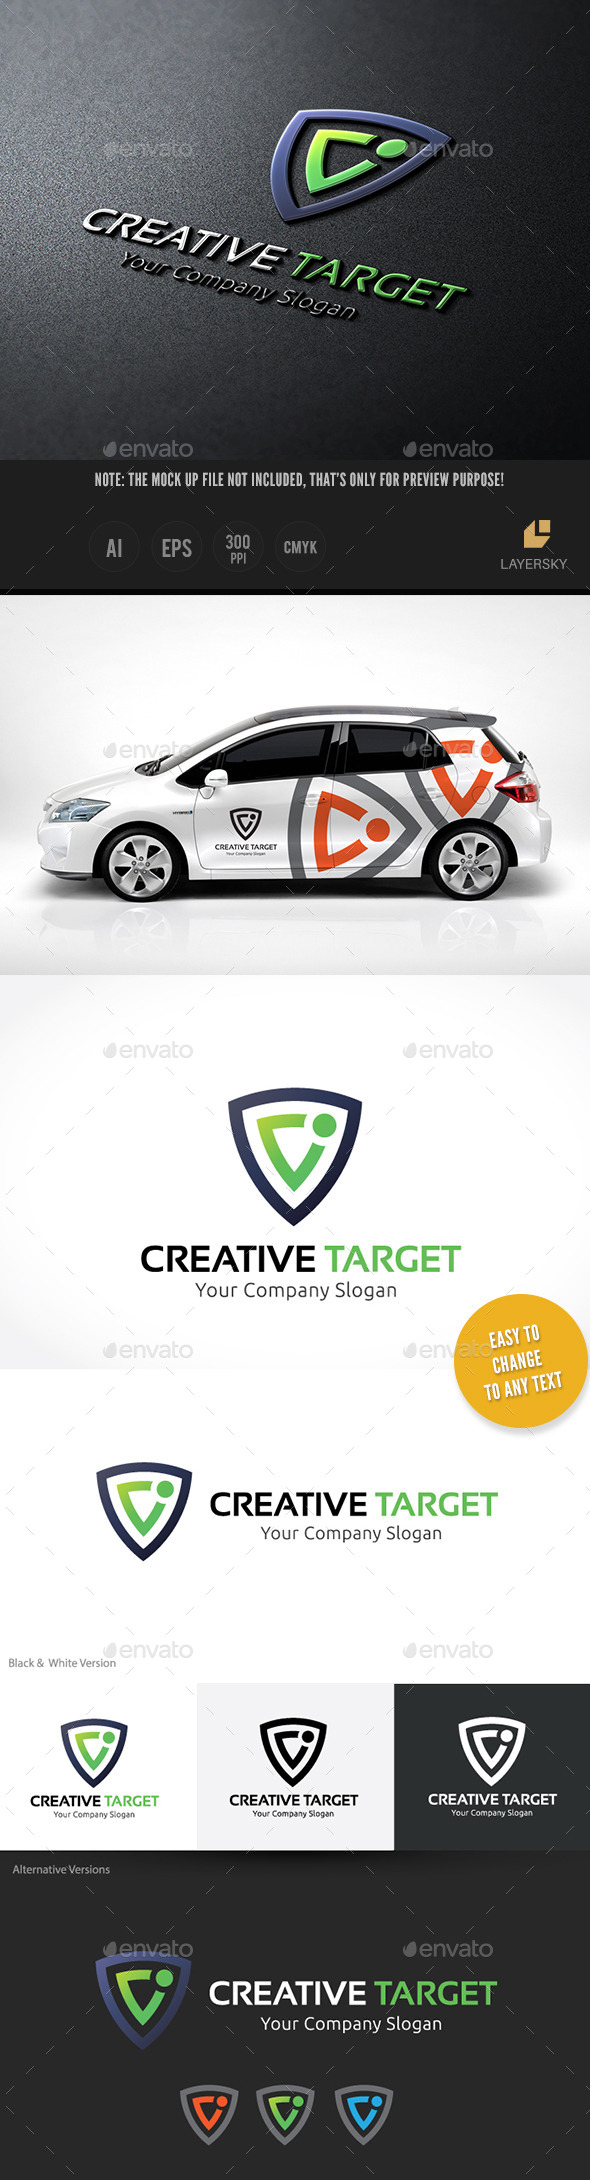 GraphicRiver Creative Target 10654758